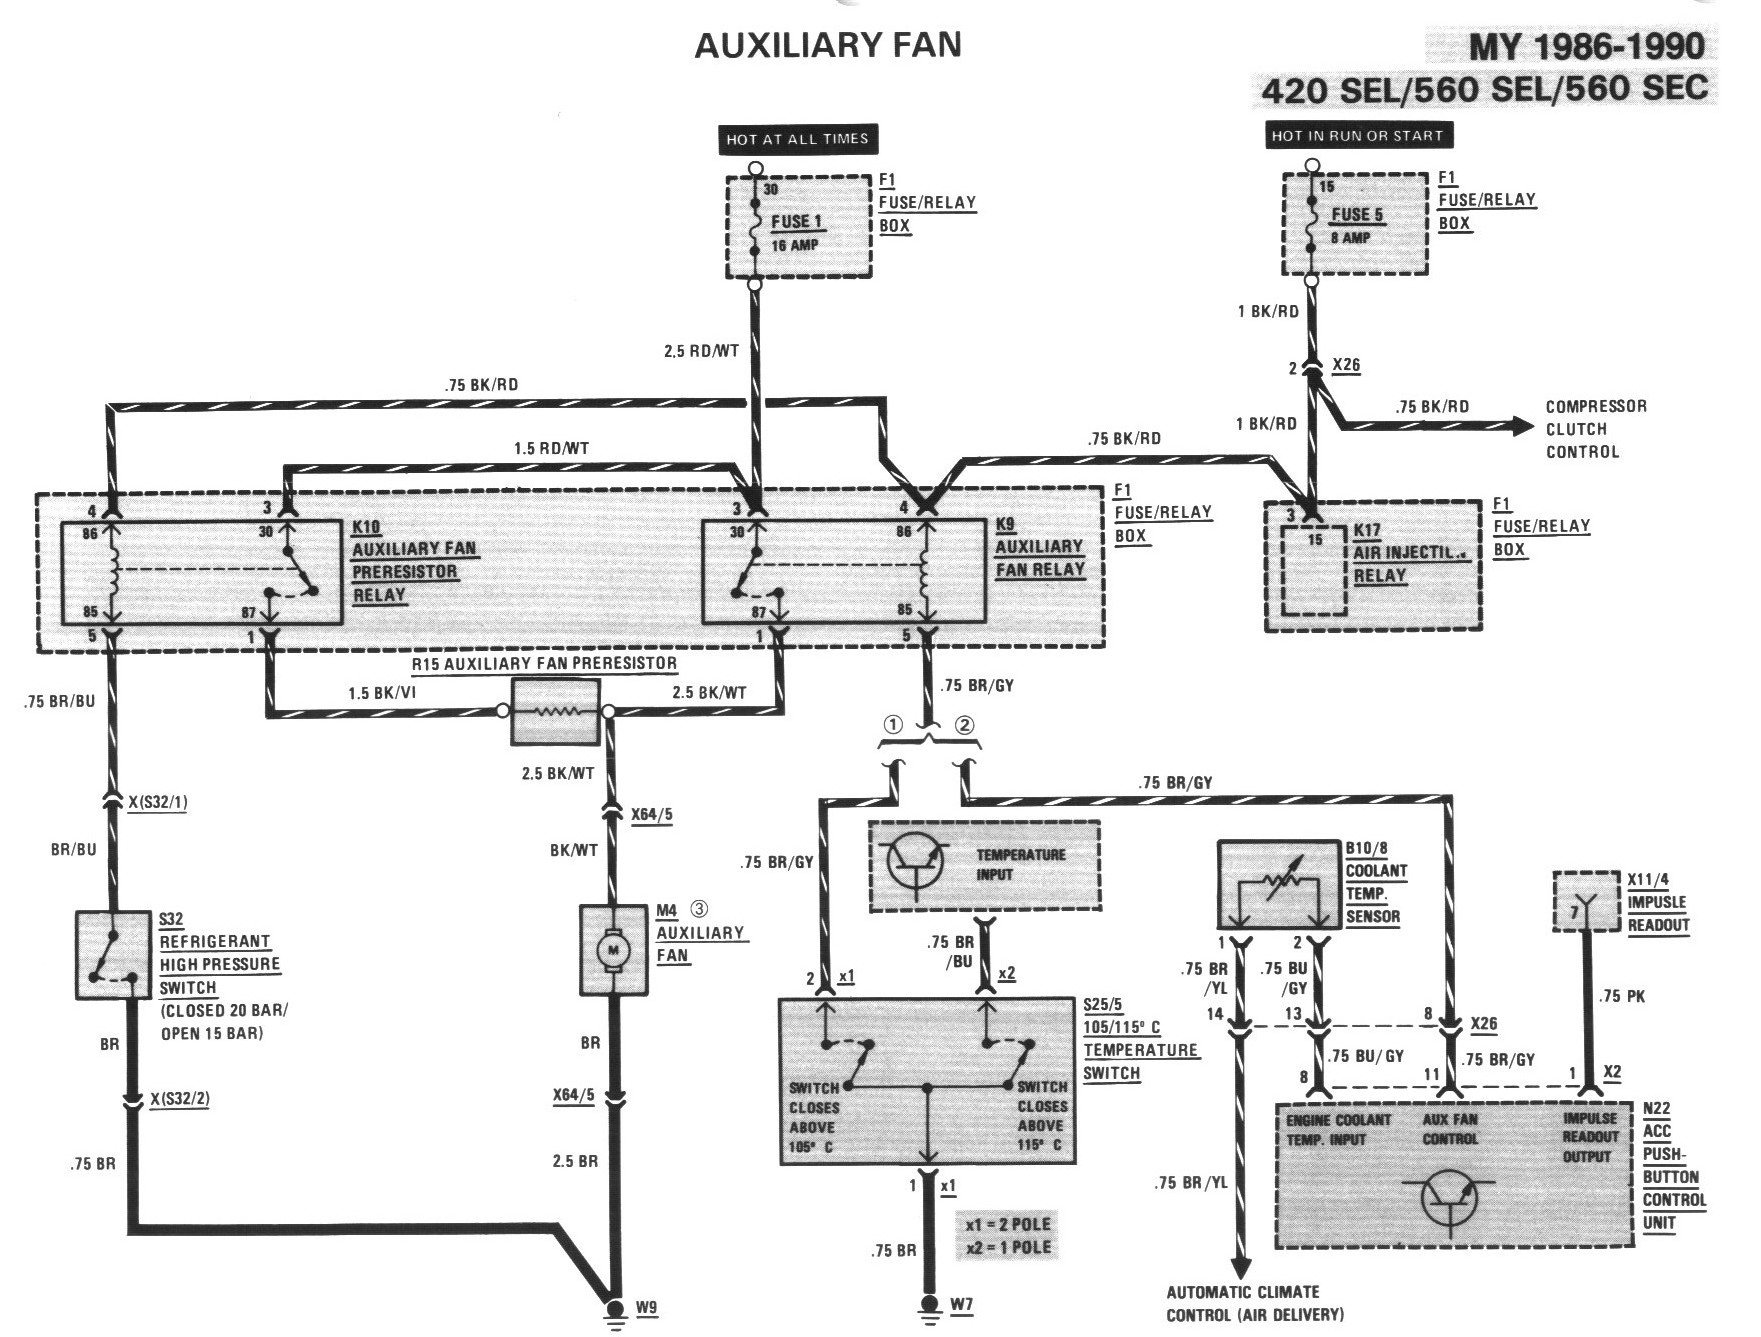 mercedes 560sel i need wiring diagram of the auxilary